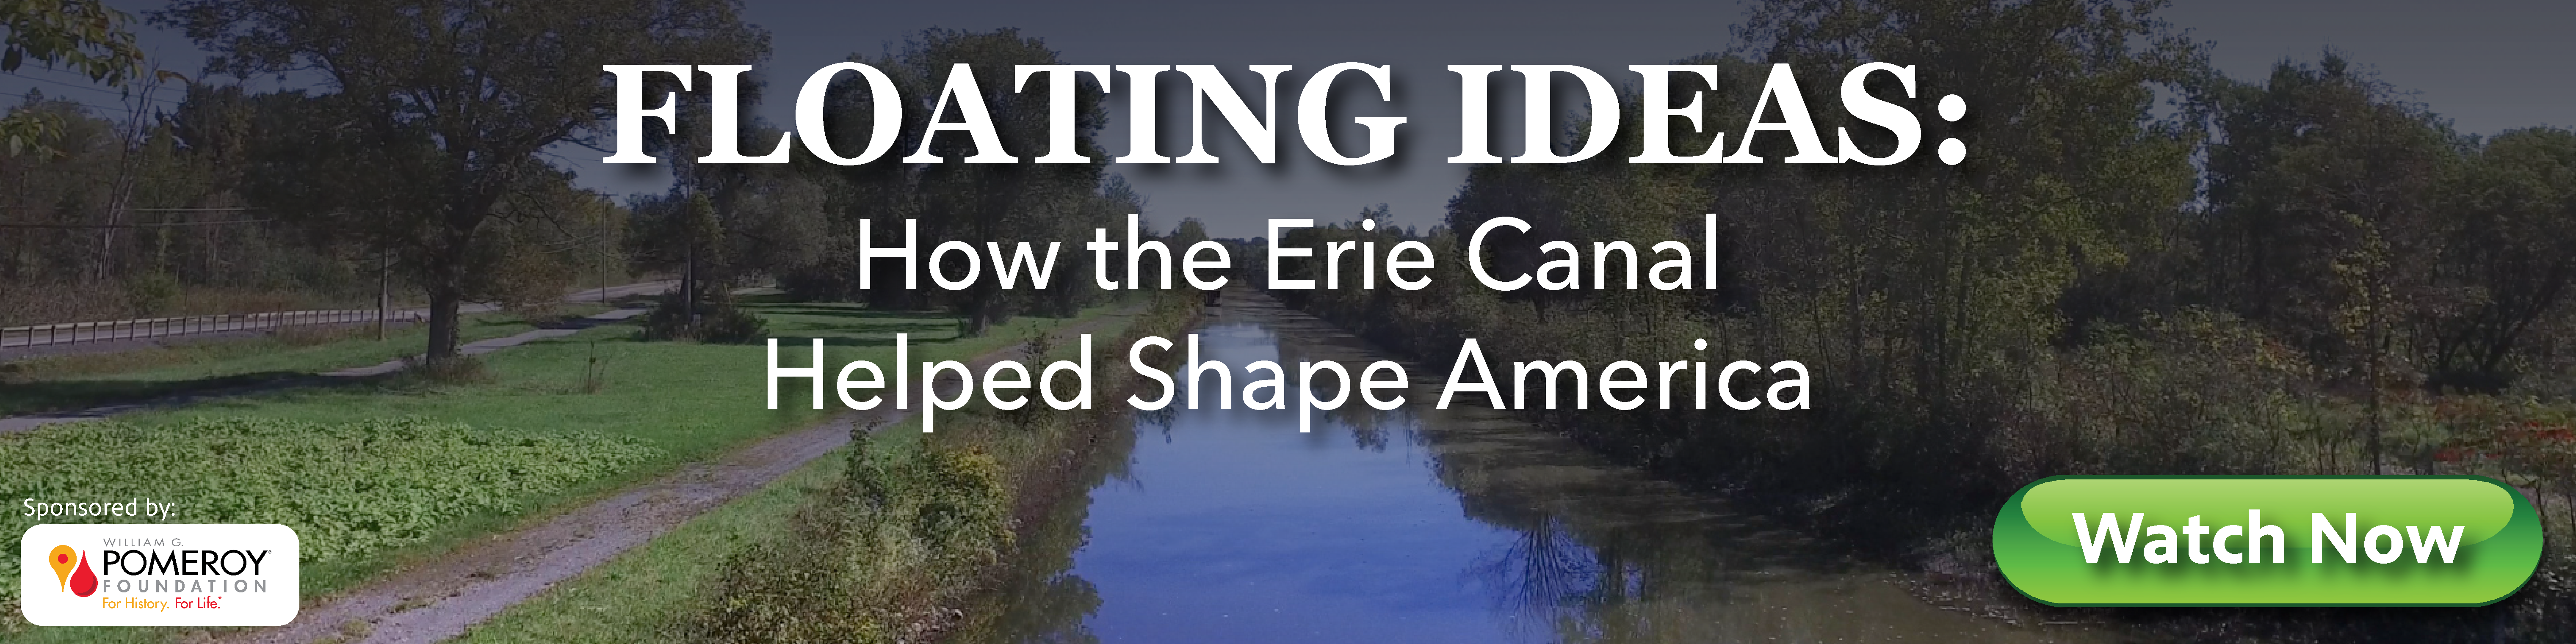 Erie Canal_Watch Now_Web Banner-07